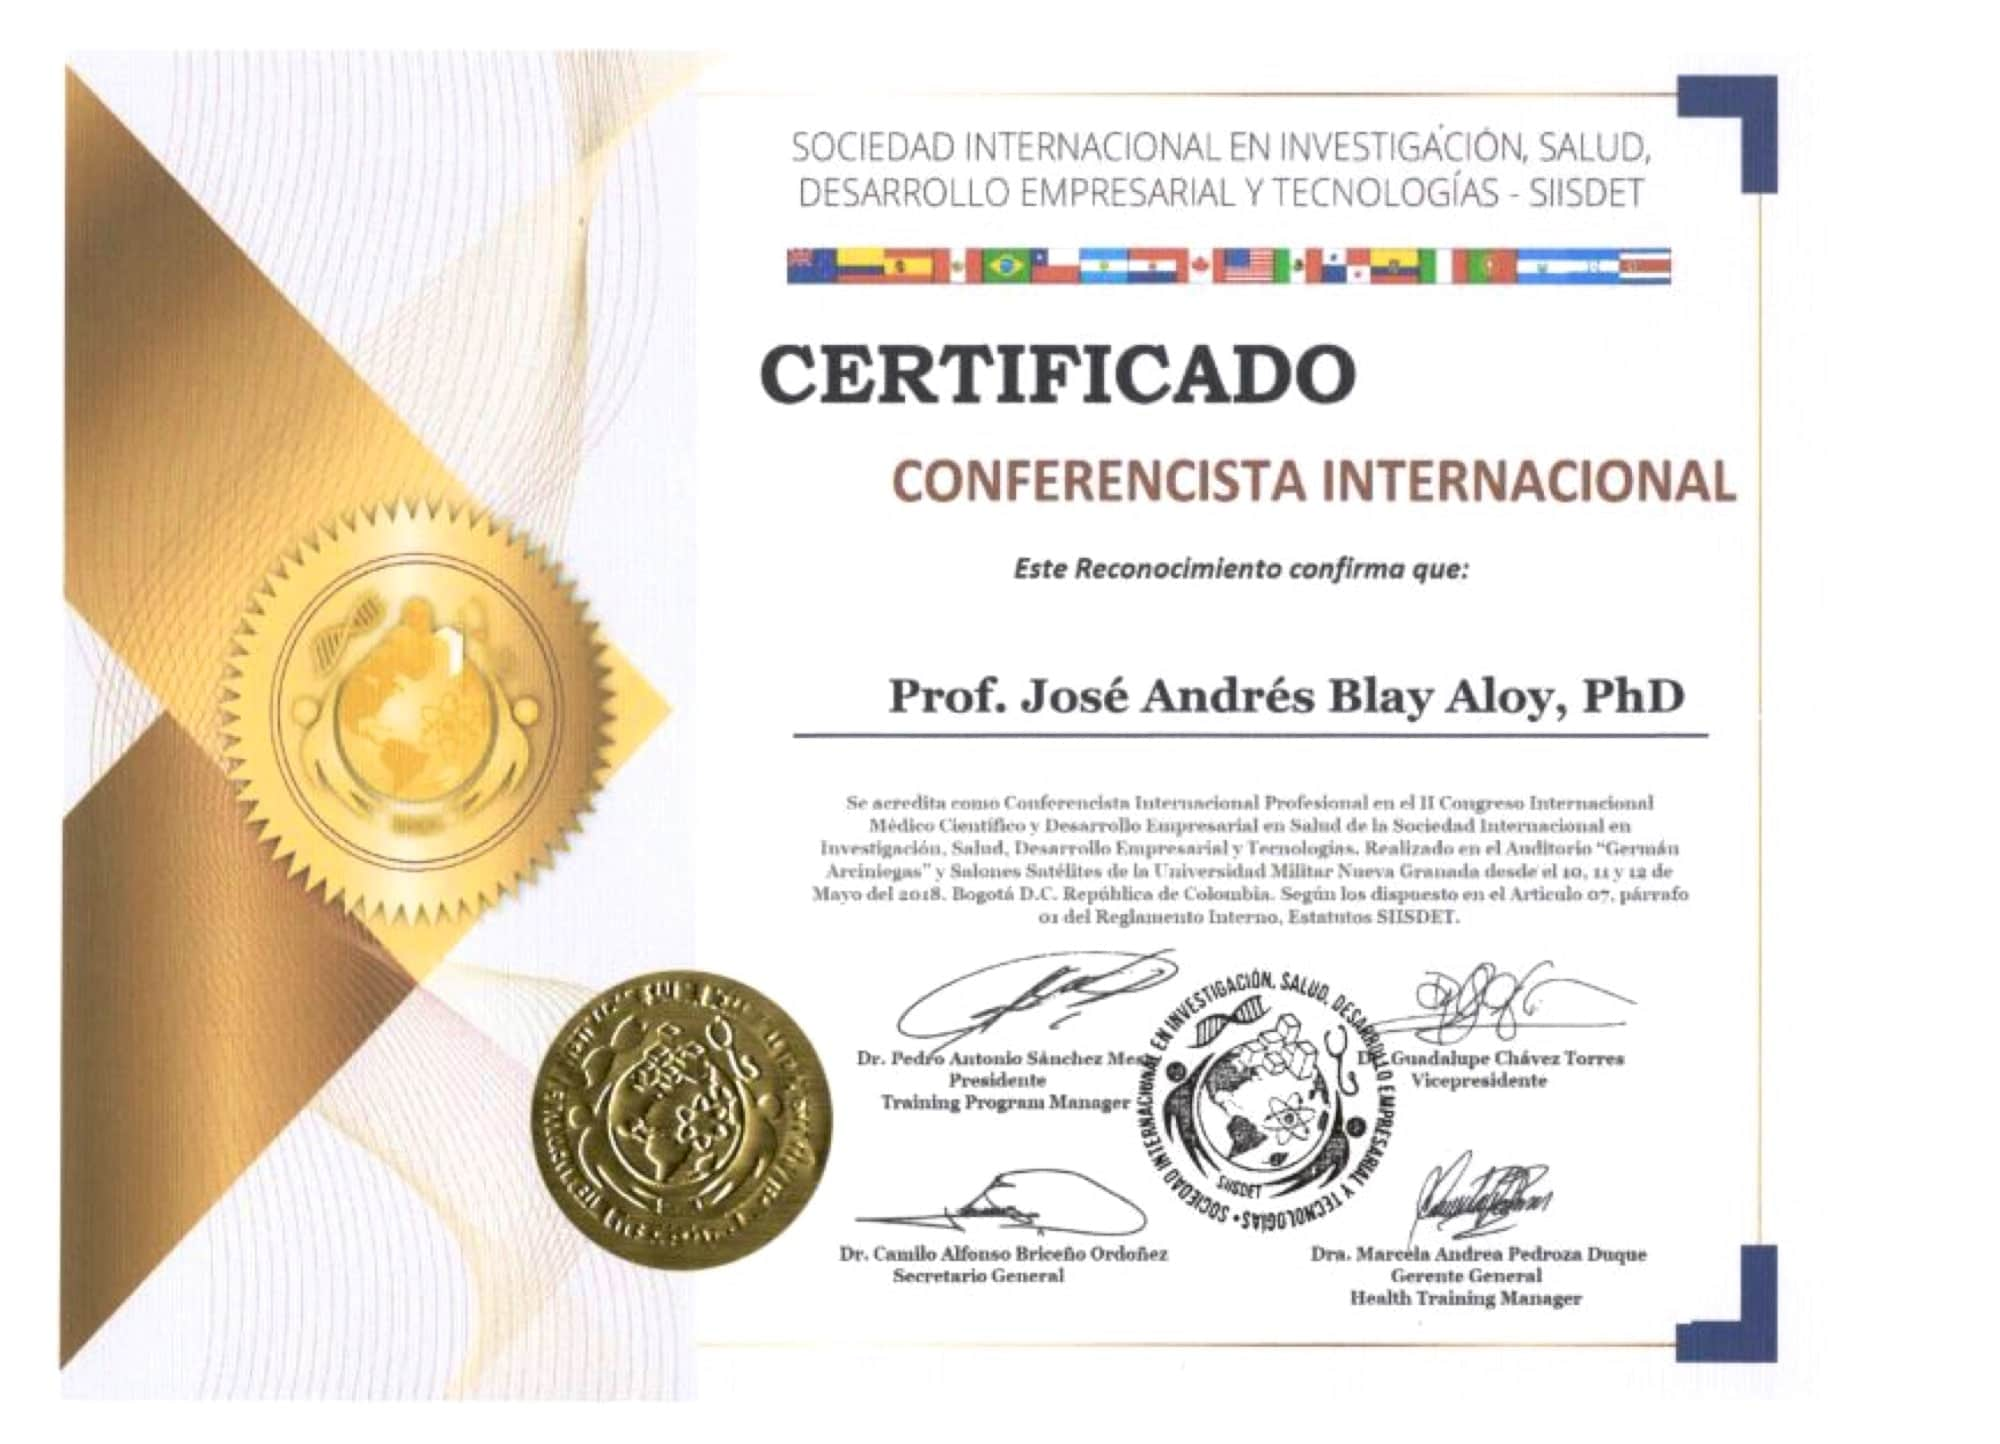 Conferencista Internacional Jose Andres Blay Aloy